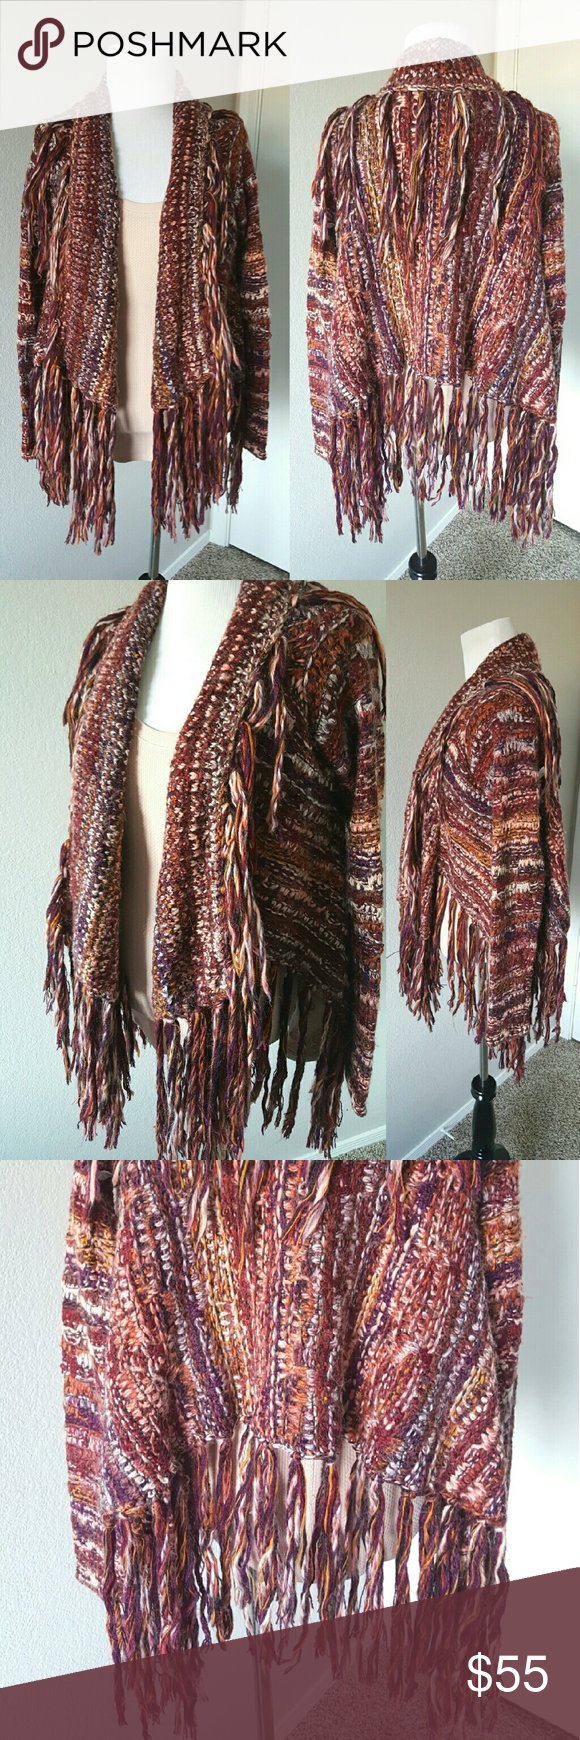 {Free People} Fringe Sweater Adorably cozy fringe sweater! No holes or stains.  *No trades *Bundle to save 10% Free People Sweaters Cardigans